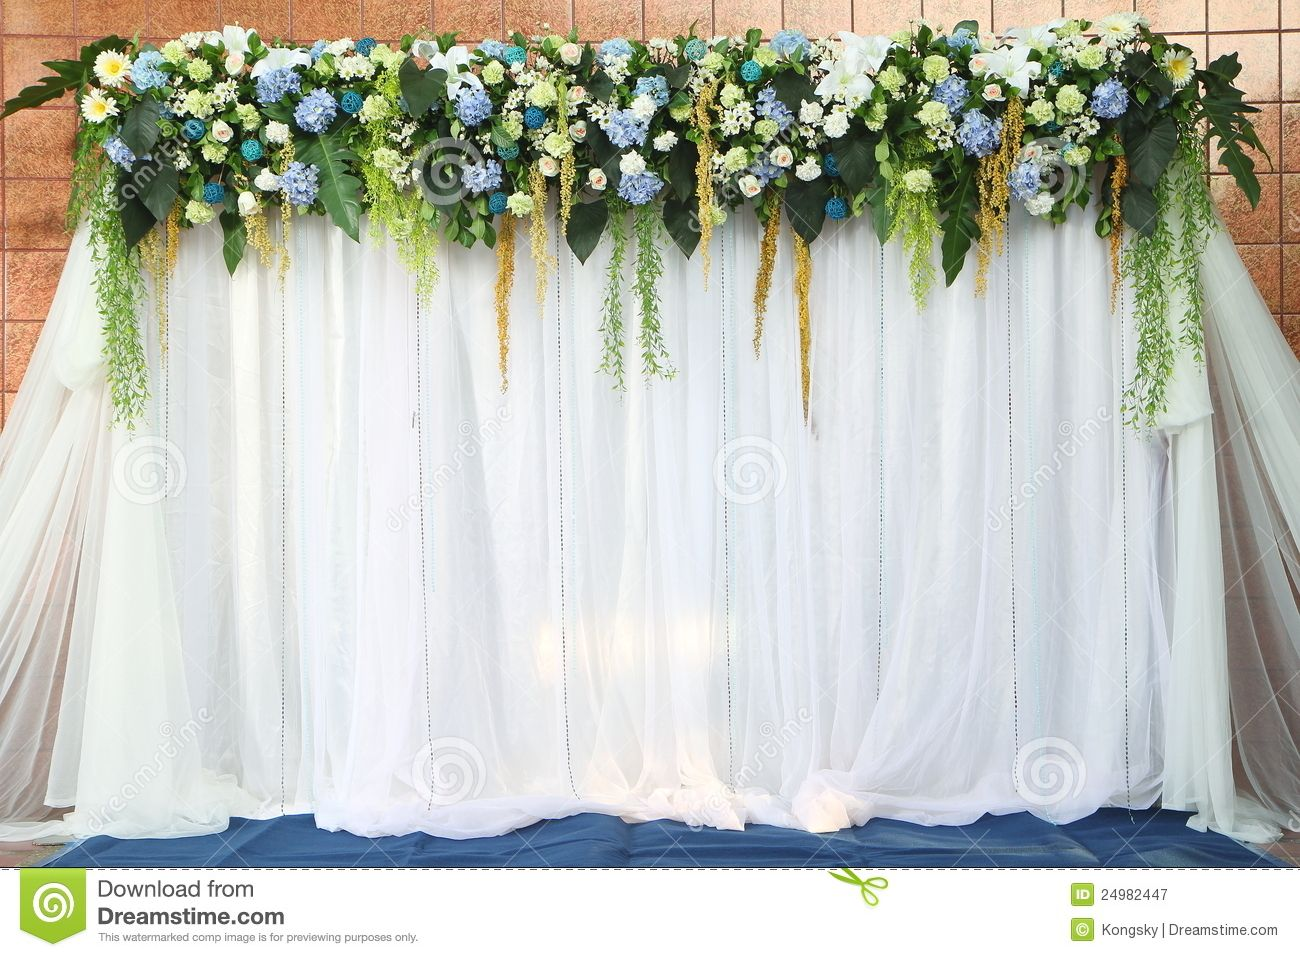 Photo About White And Green Backdrop Flowers Over Fabric Ready For Wedding Ceremony